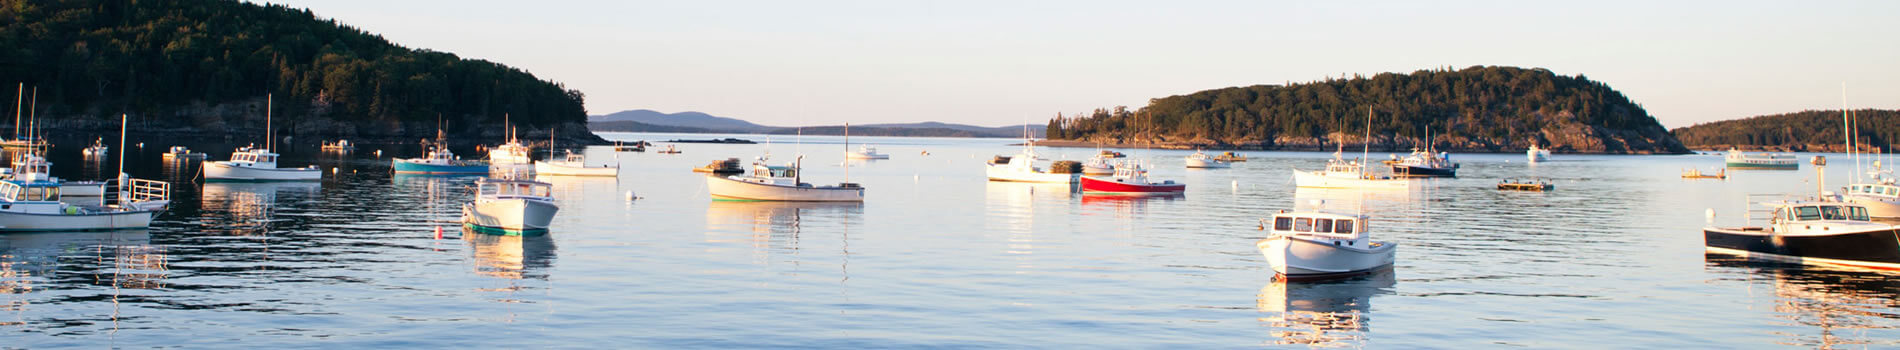 Banner image for About Us section of the website.  Image is of boats in a harbor.